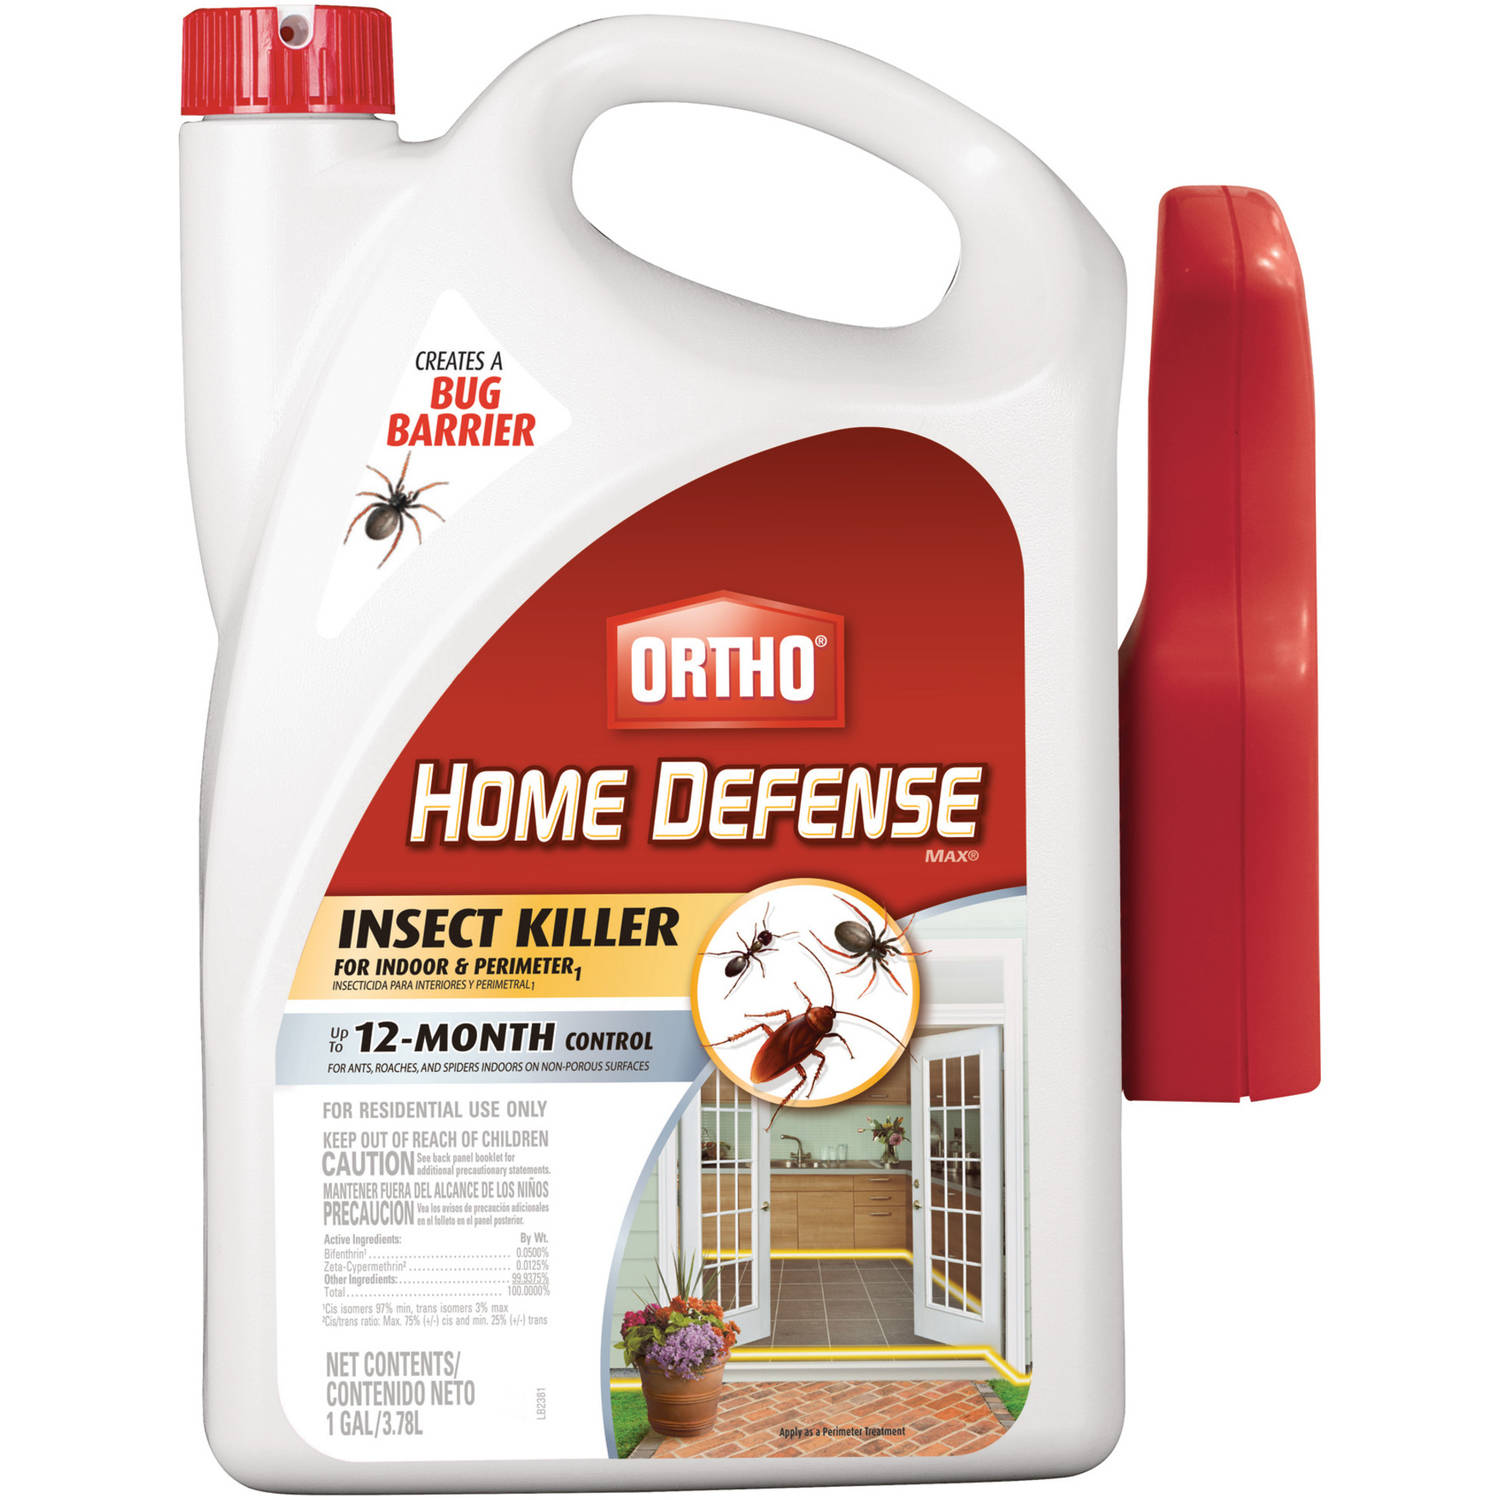 Ortho Home Defense Max Ready-to-Use, 1 gal